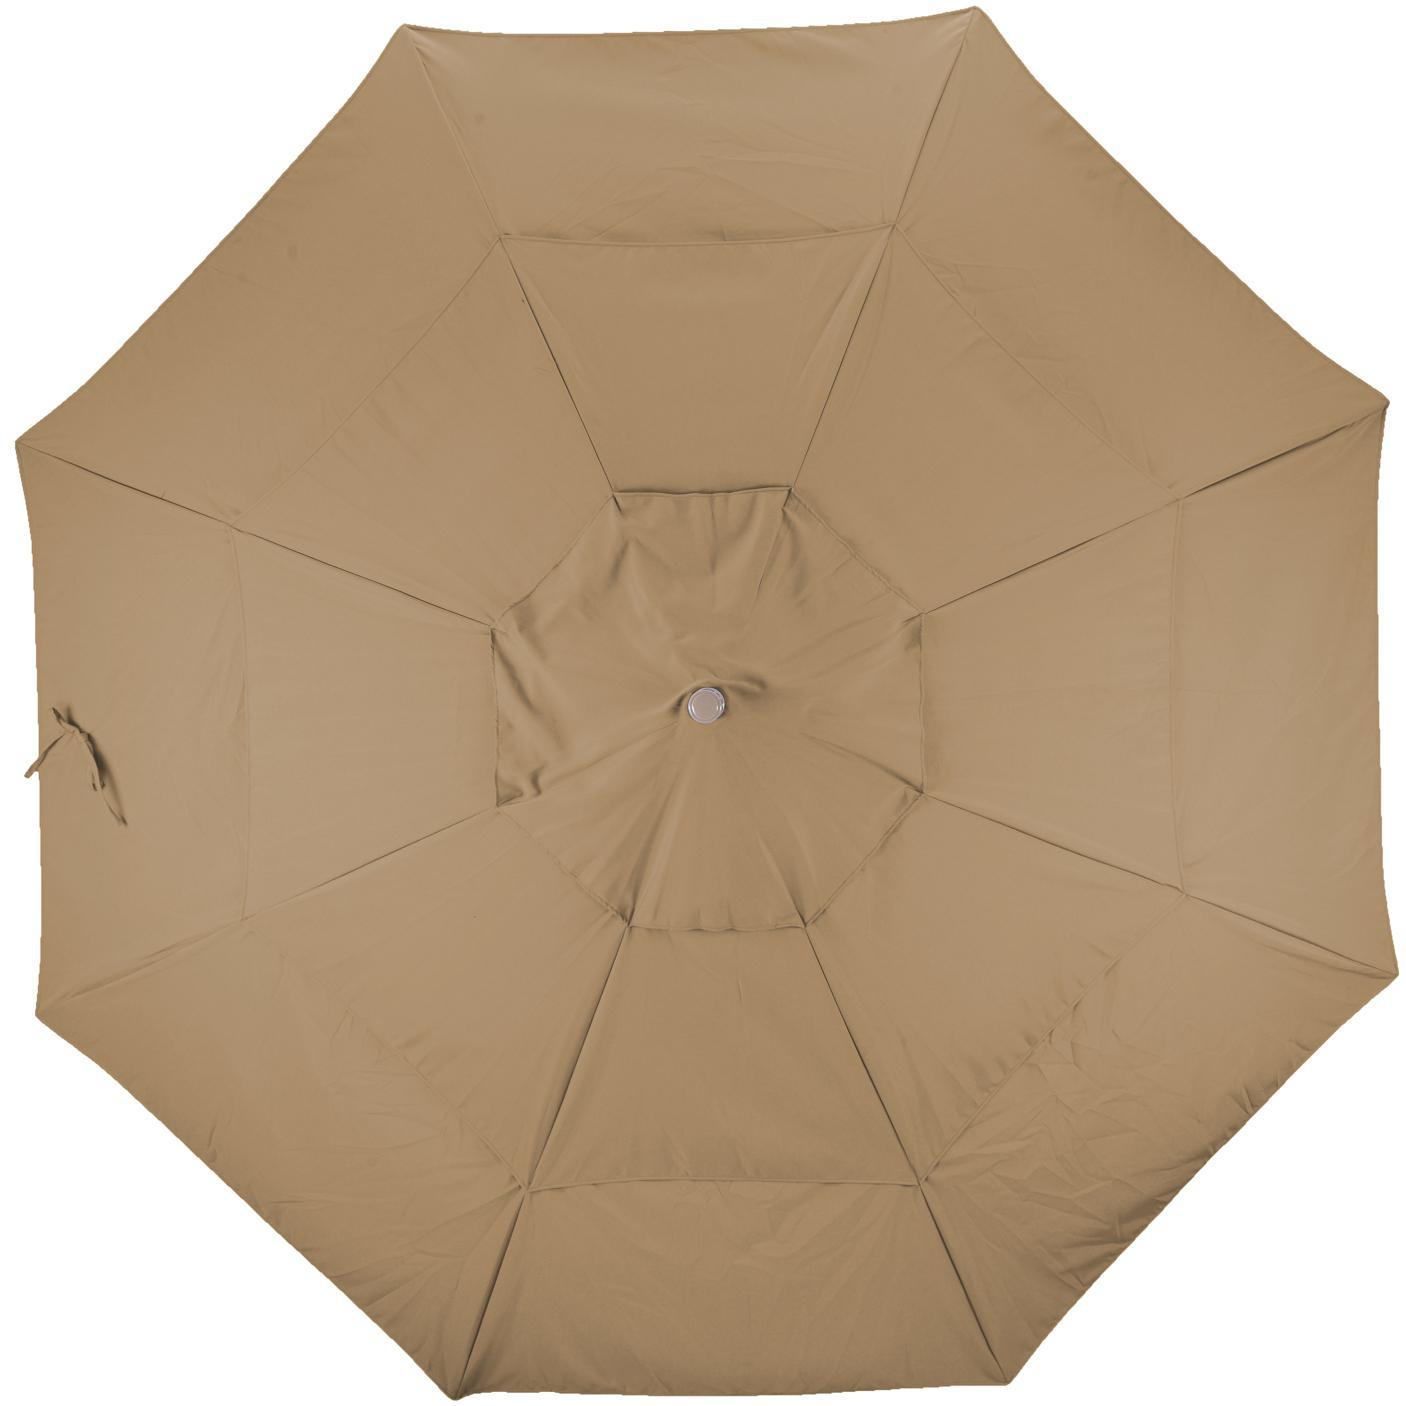 California Umbrella Sunbrella A Fabric In Cocoa 2909196